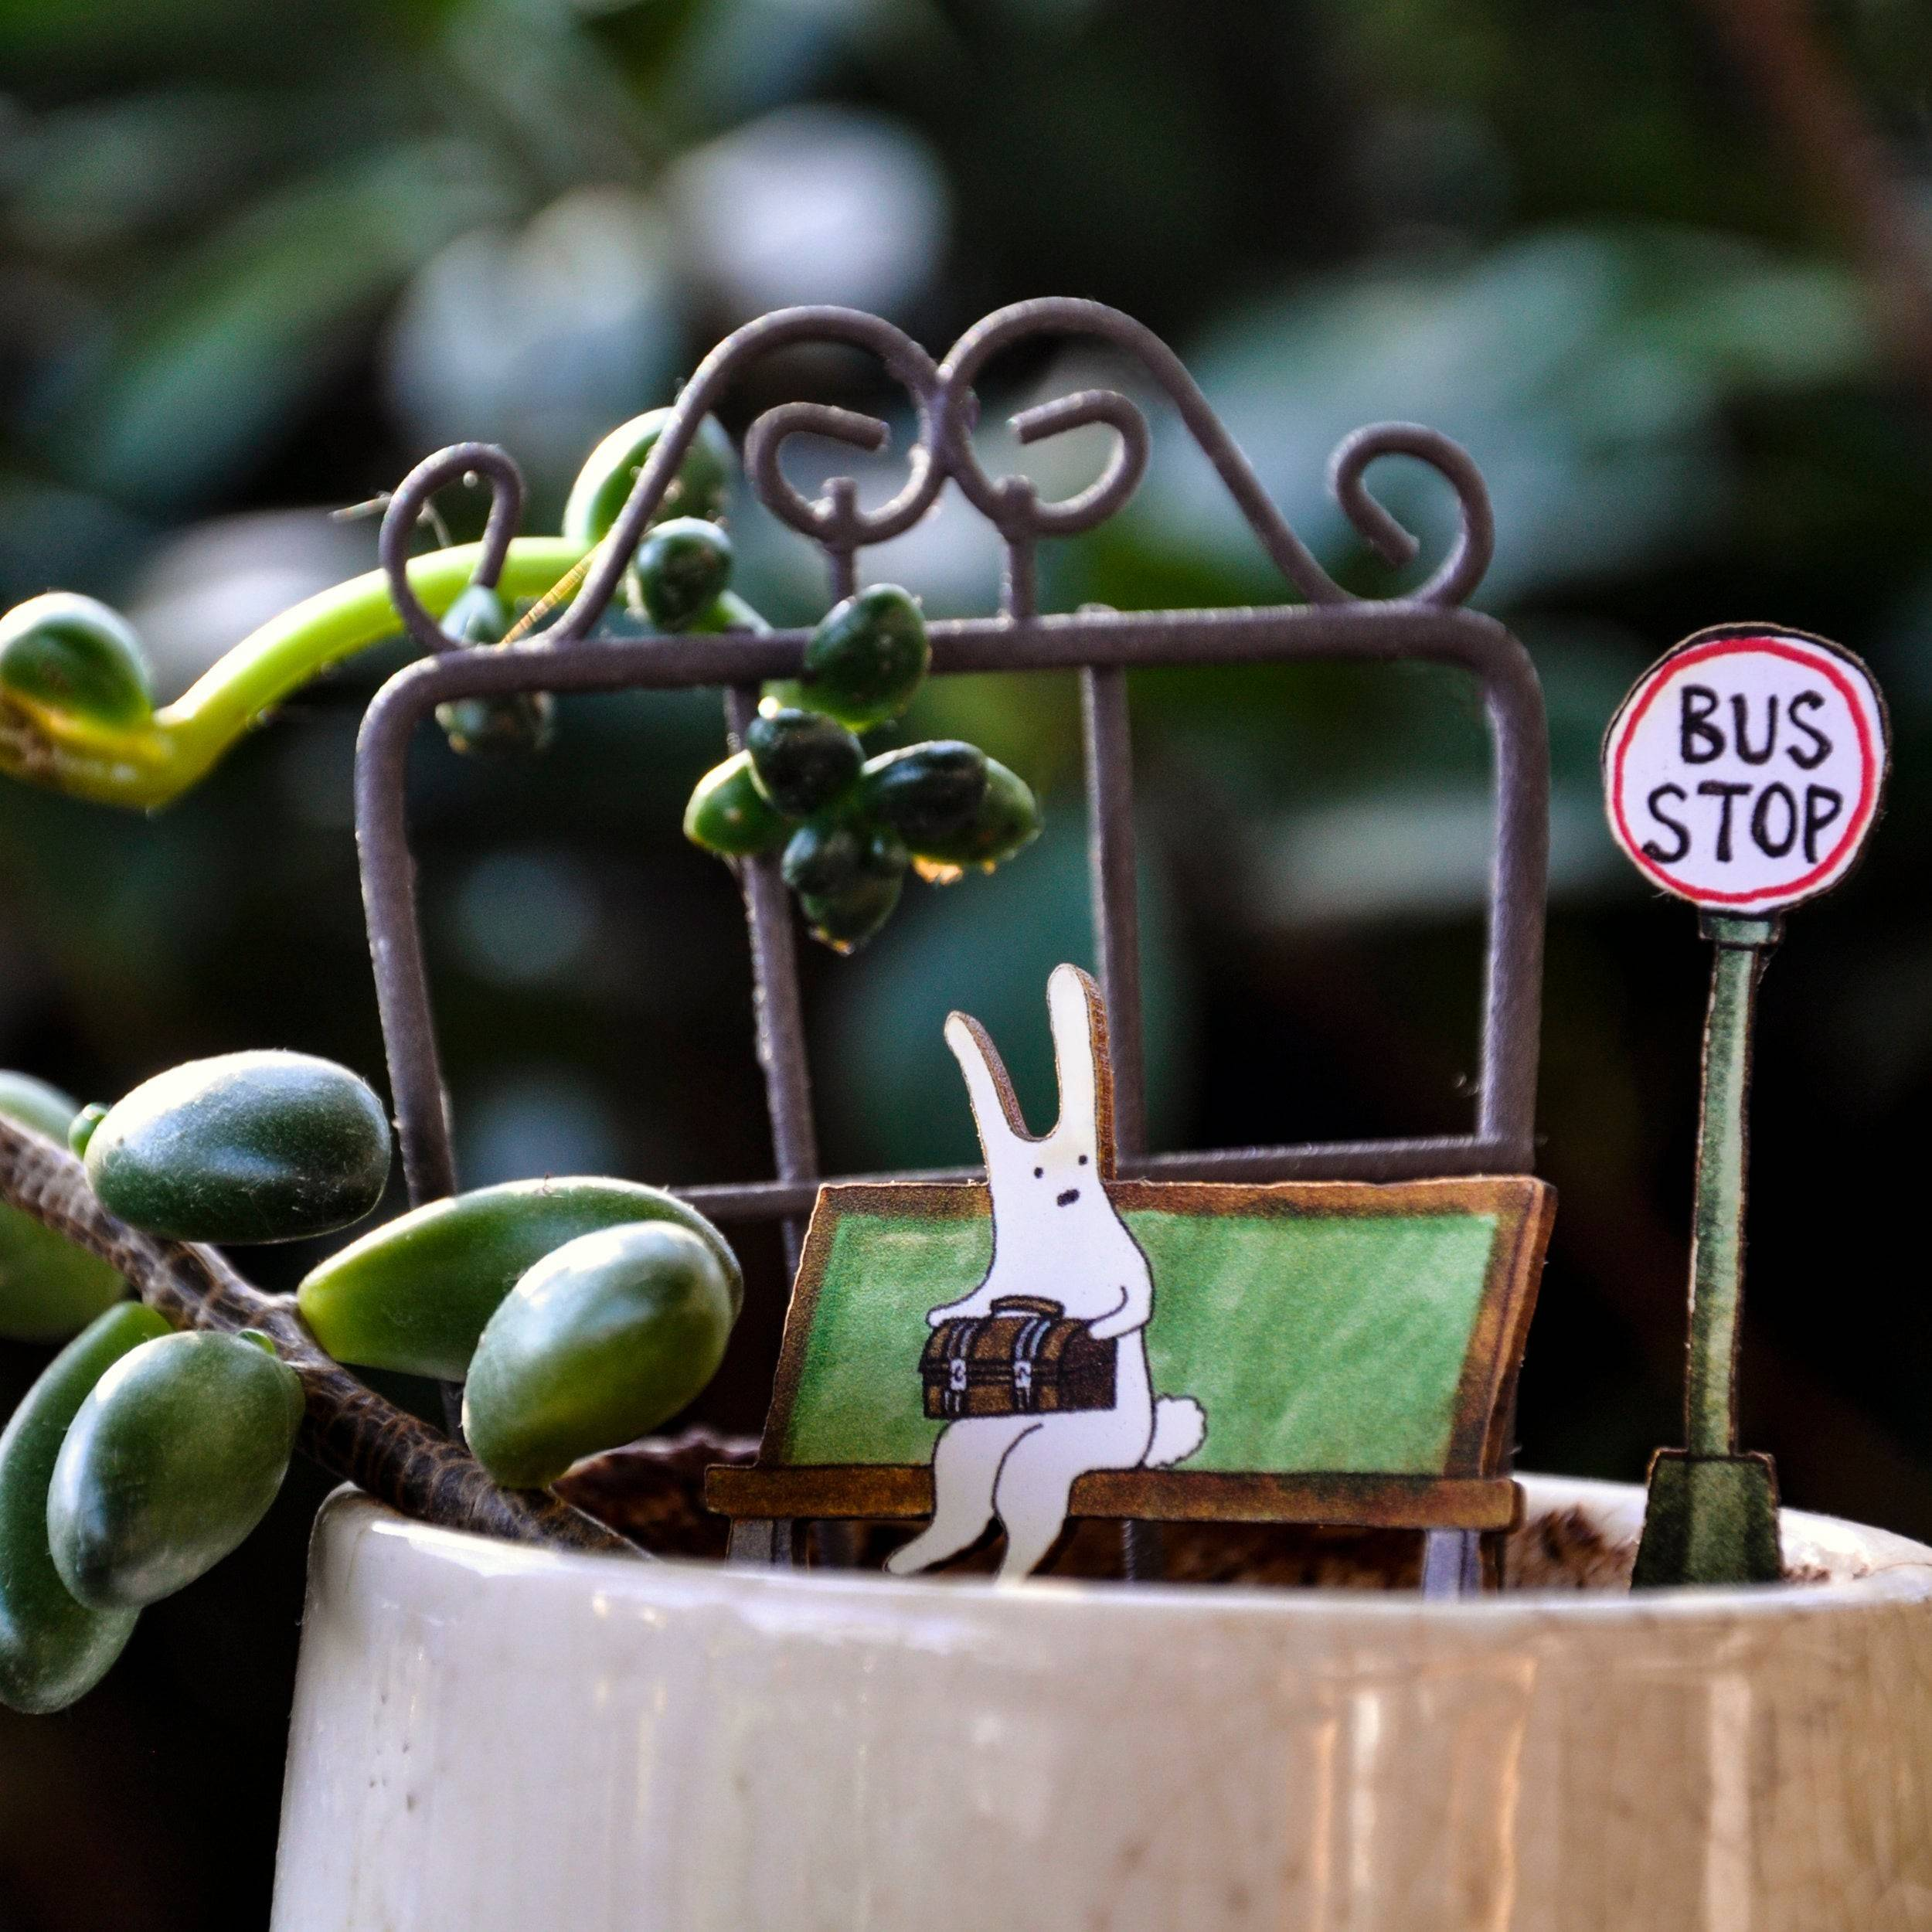 Bunny Bus Stop Fancy Plants Diorama Kit